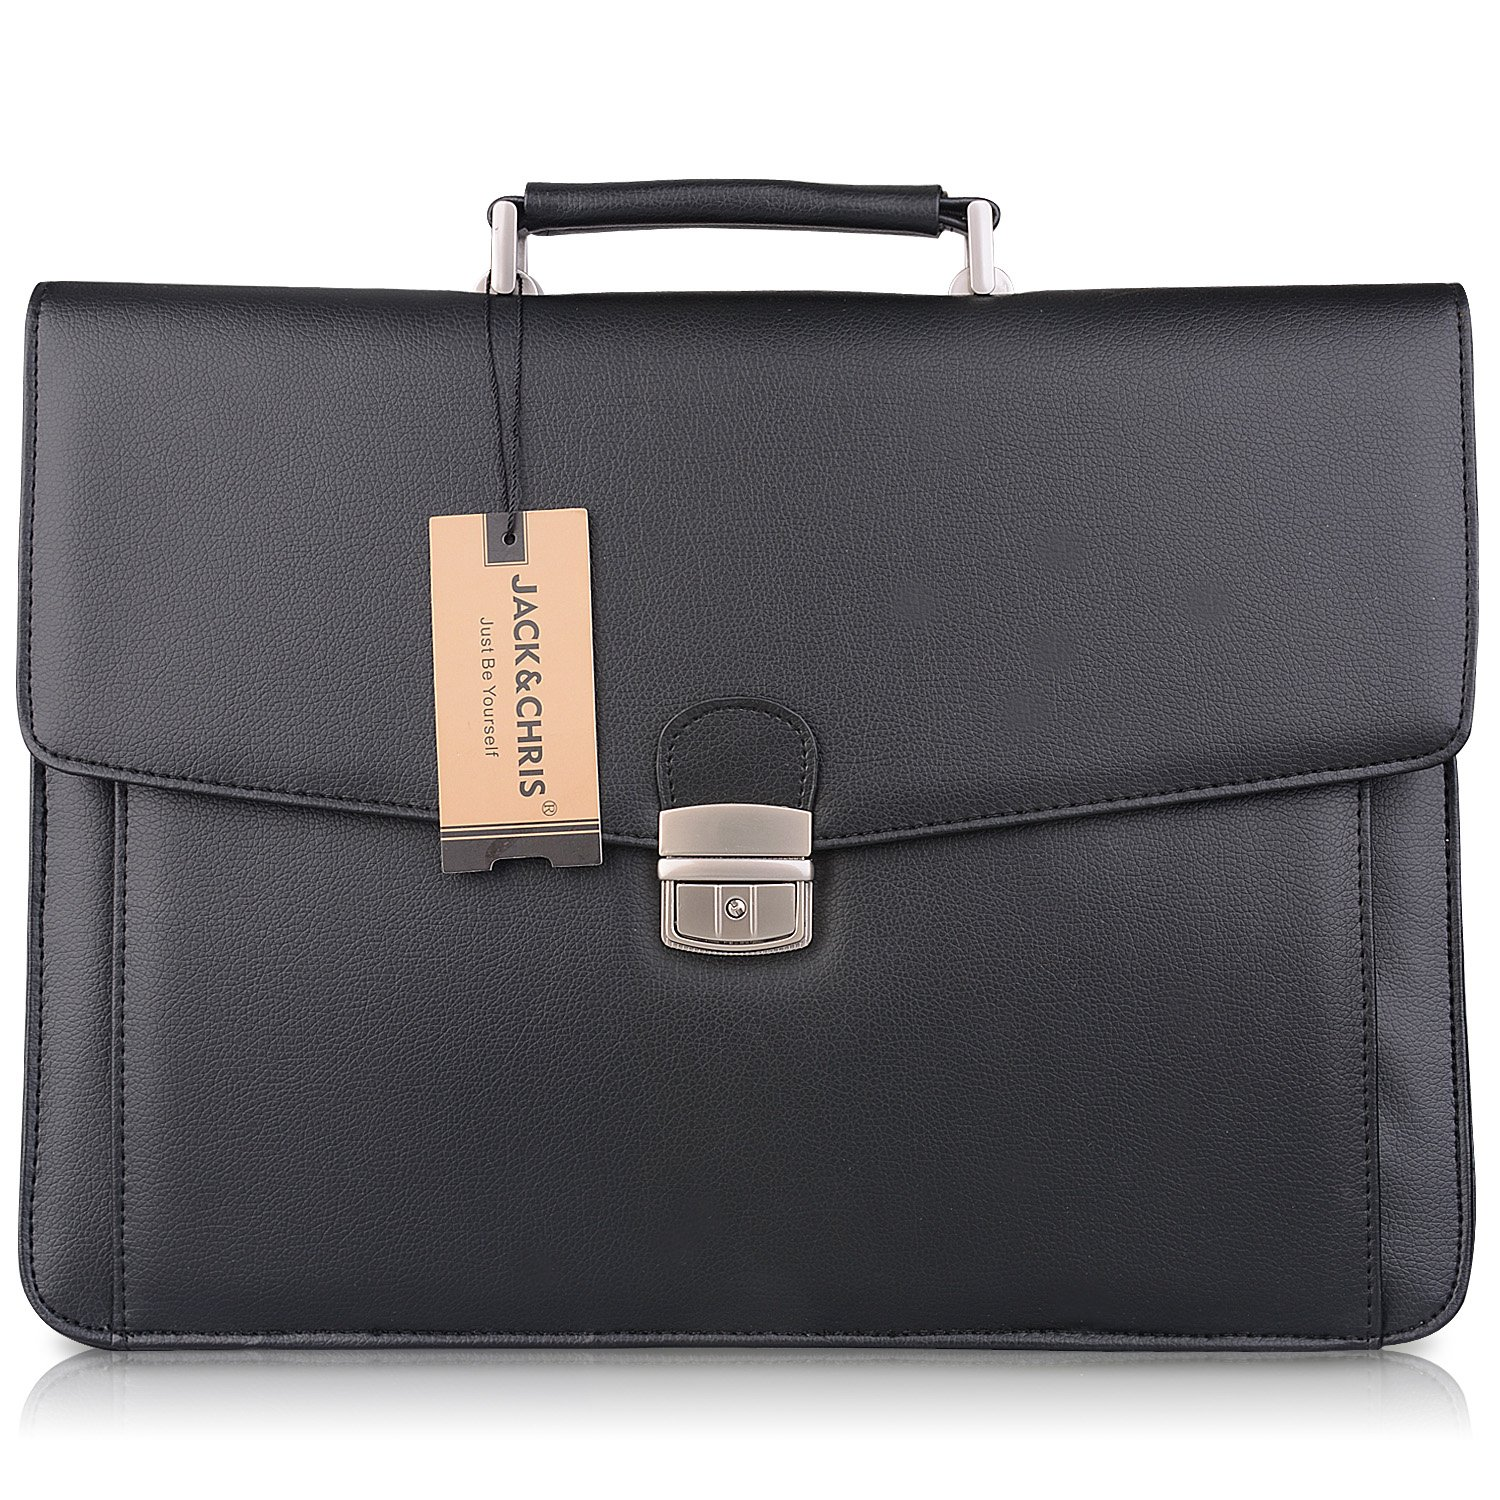 Jack&Chris®New PU Leather Briefcase Messenger Bag Laptop Bag, MBYX012:  Amazon.co.uk: Luggage